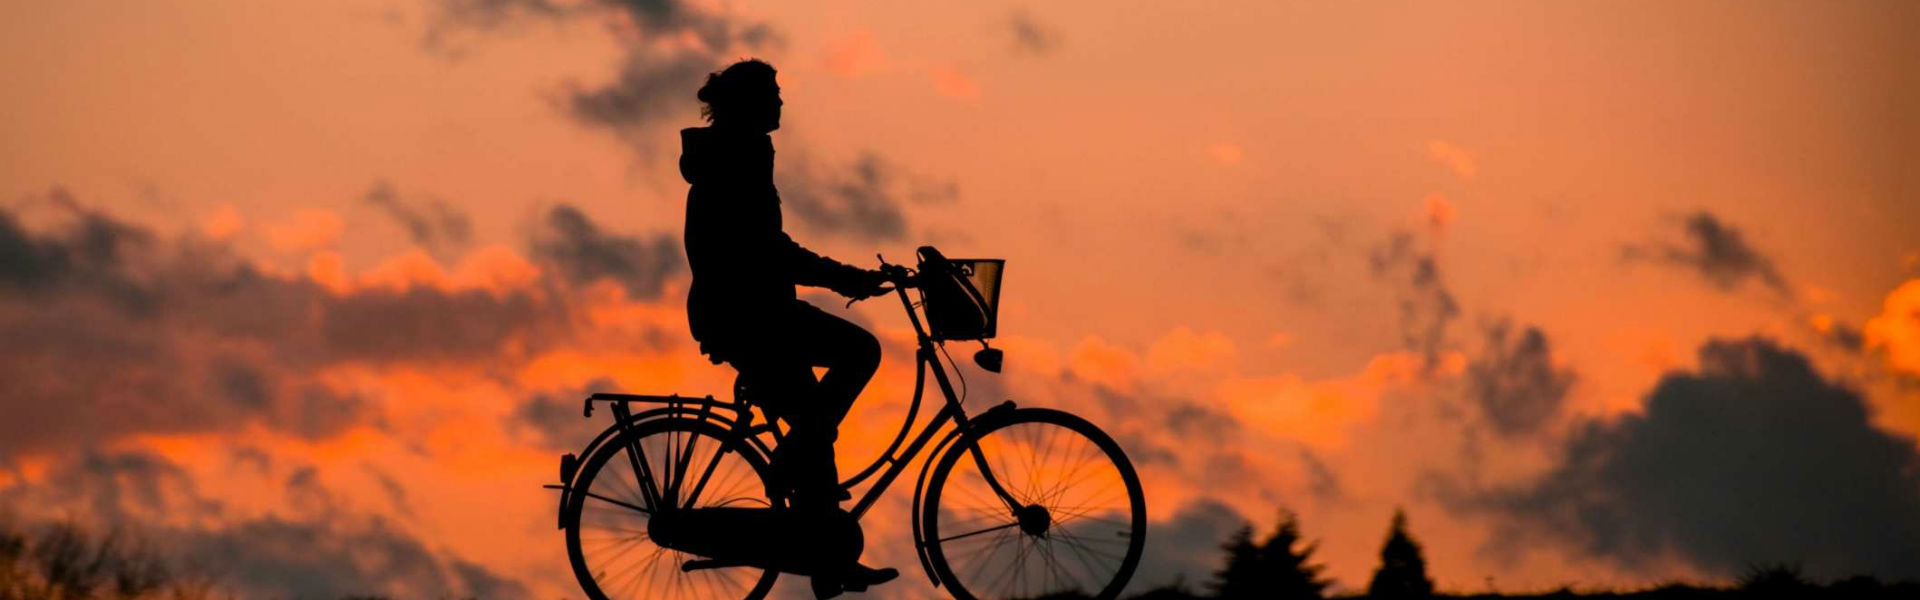 a bicycle with a sunset in the background